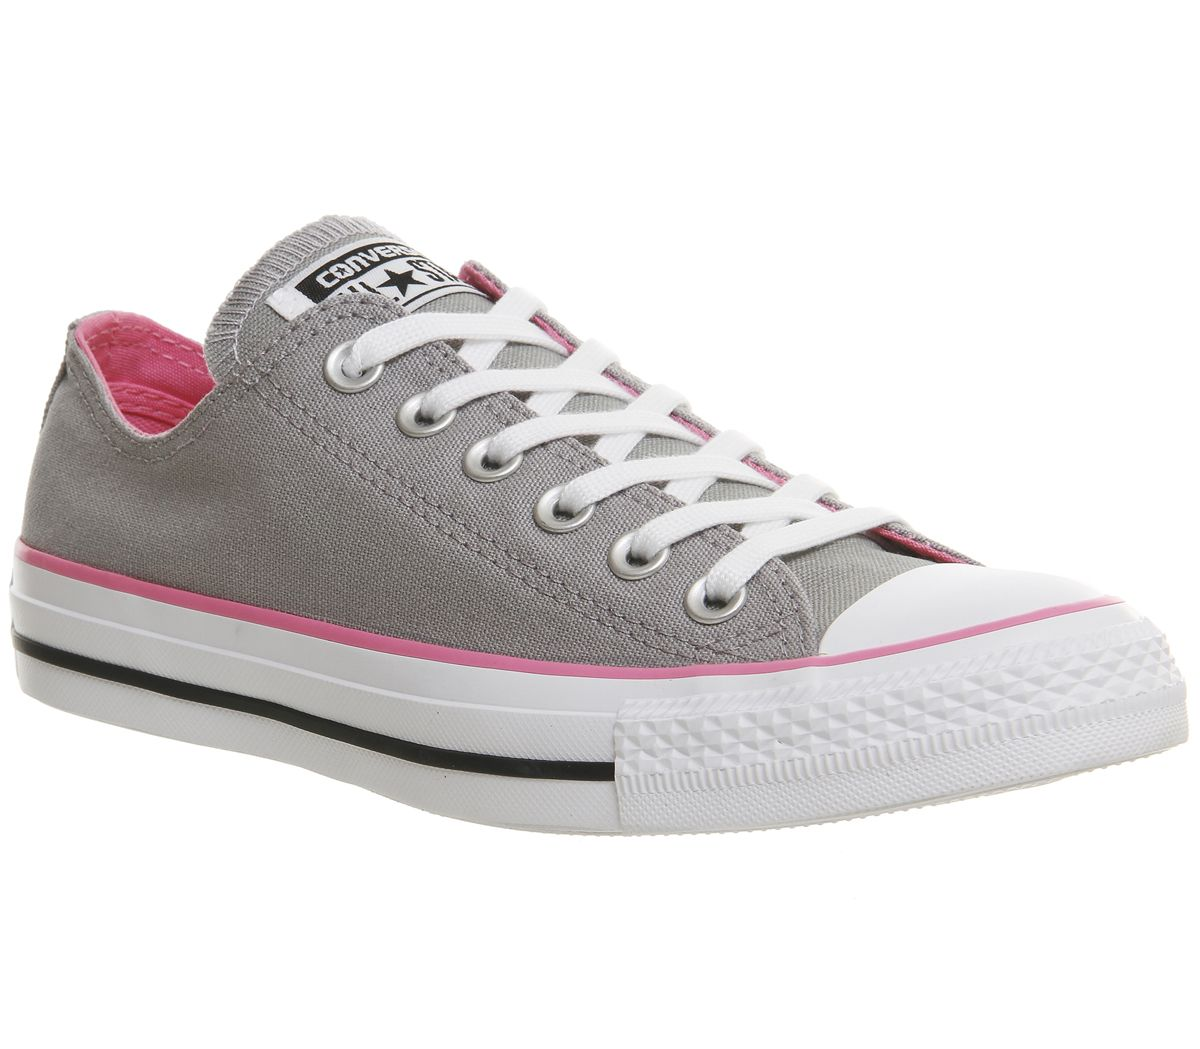 958ba507364541 Converse Converse All Star Low Trainers Grey Pink - Hers trainers